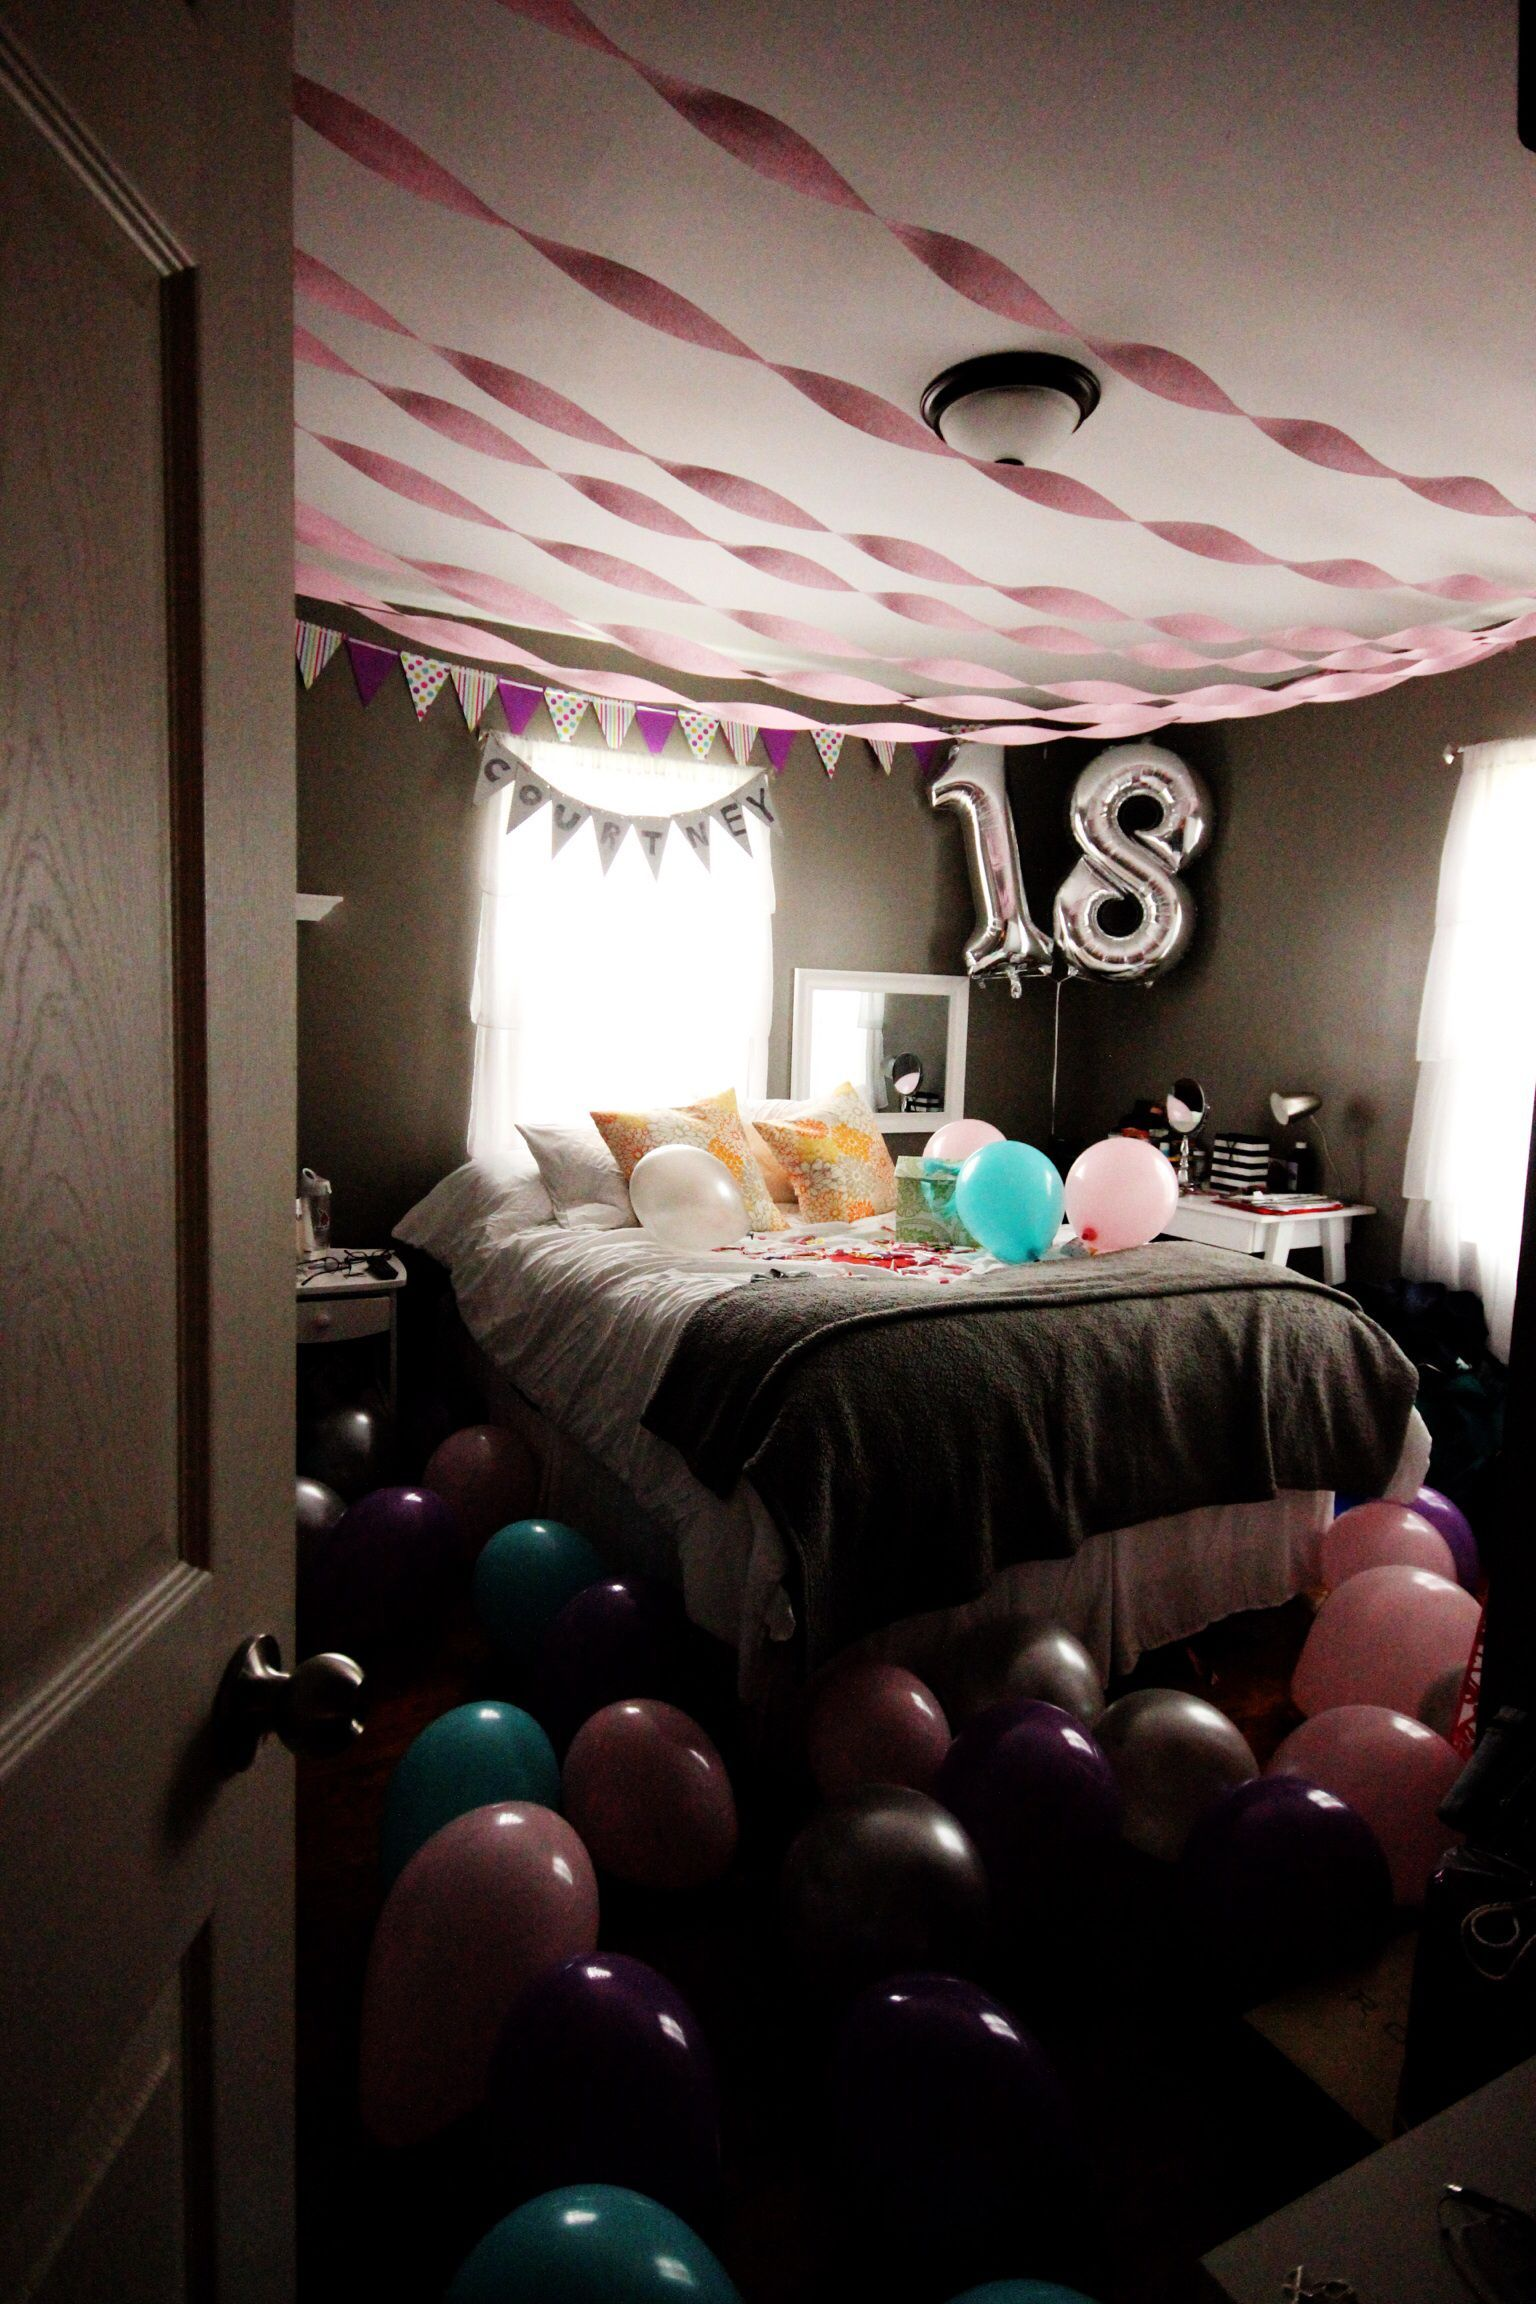 Excellent No Cost Bedroom Birthday Surprise Suggestions It Is No Magic Formula That Individua In 2021 18th Birthday Gifts Birthday Surprise Boyfriend Birthday Surprise